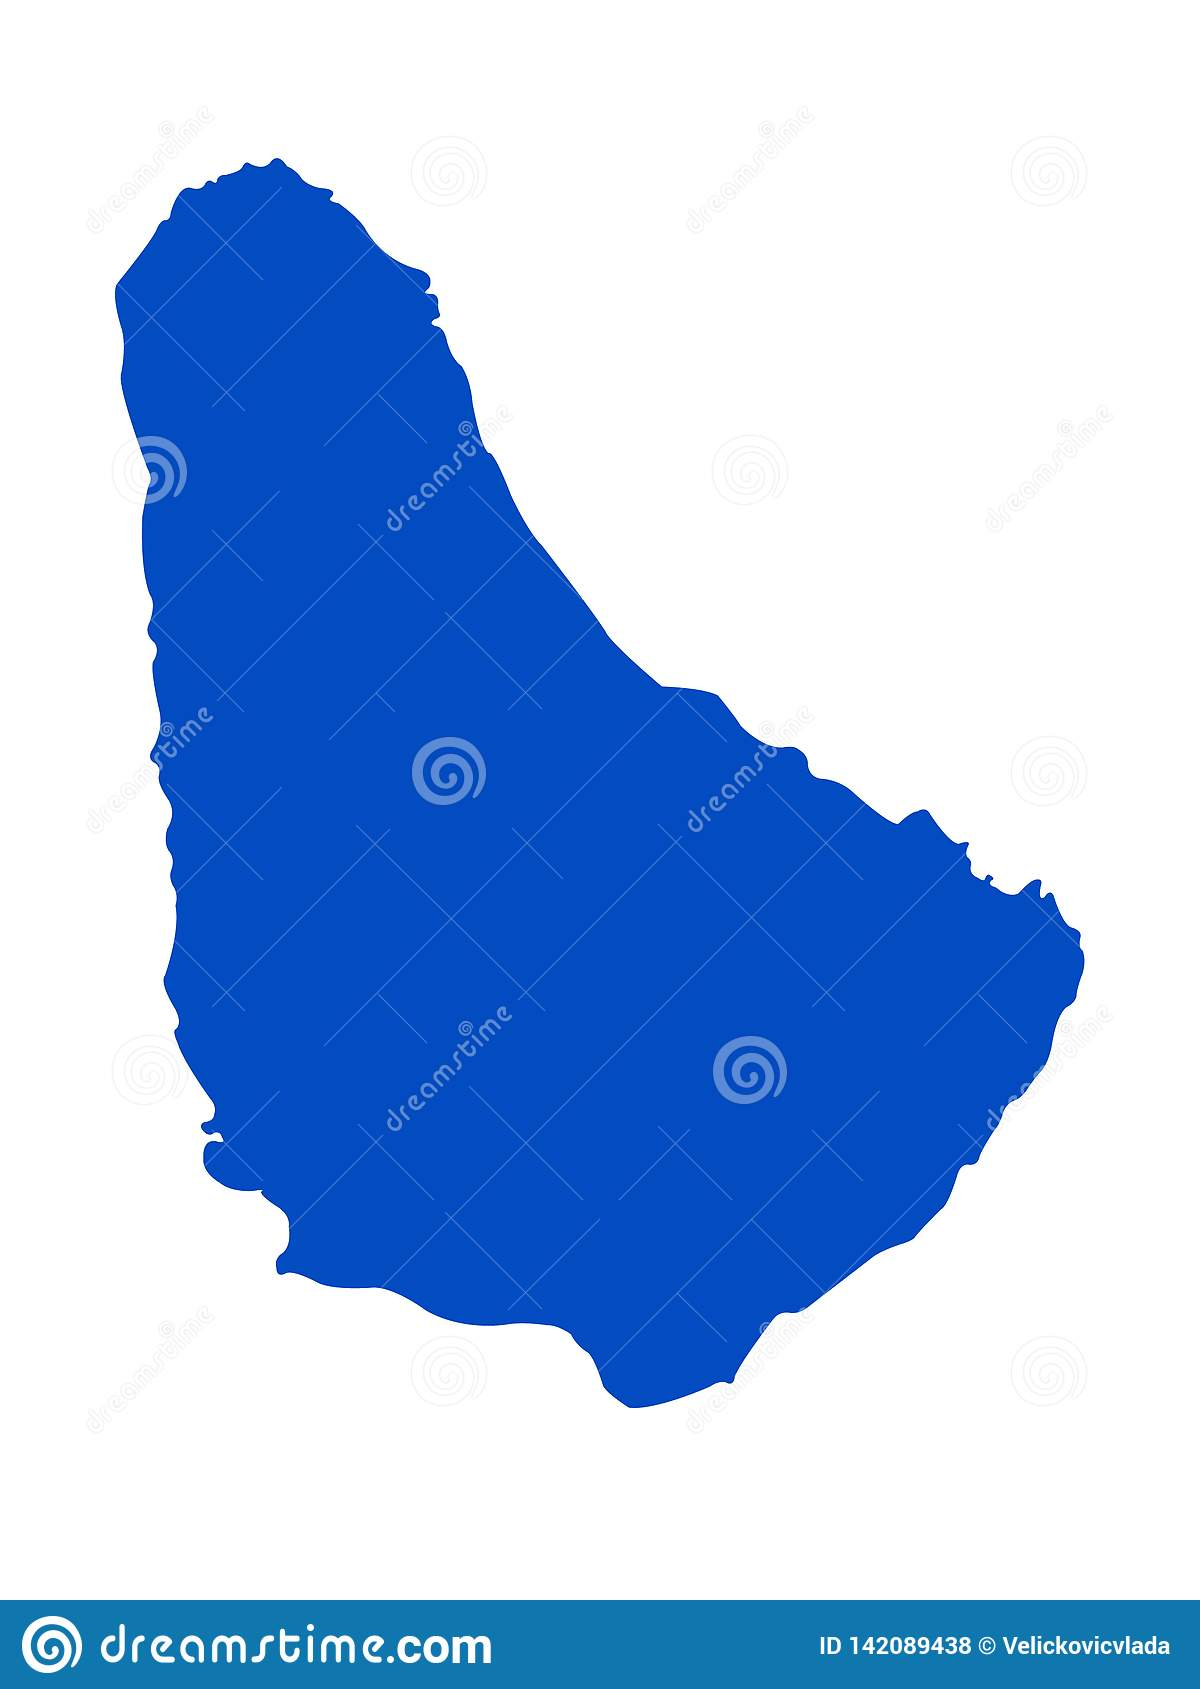 Picture of: Barbados Map Island Country In The Caribbean Region Of North America Stock Vector Illustration Of State North 142089438